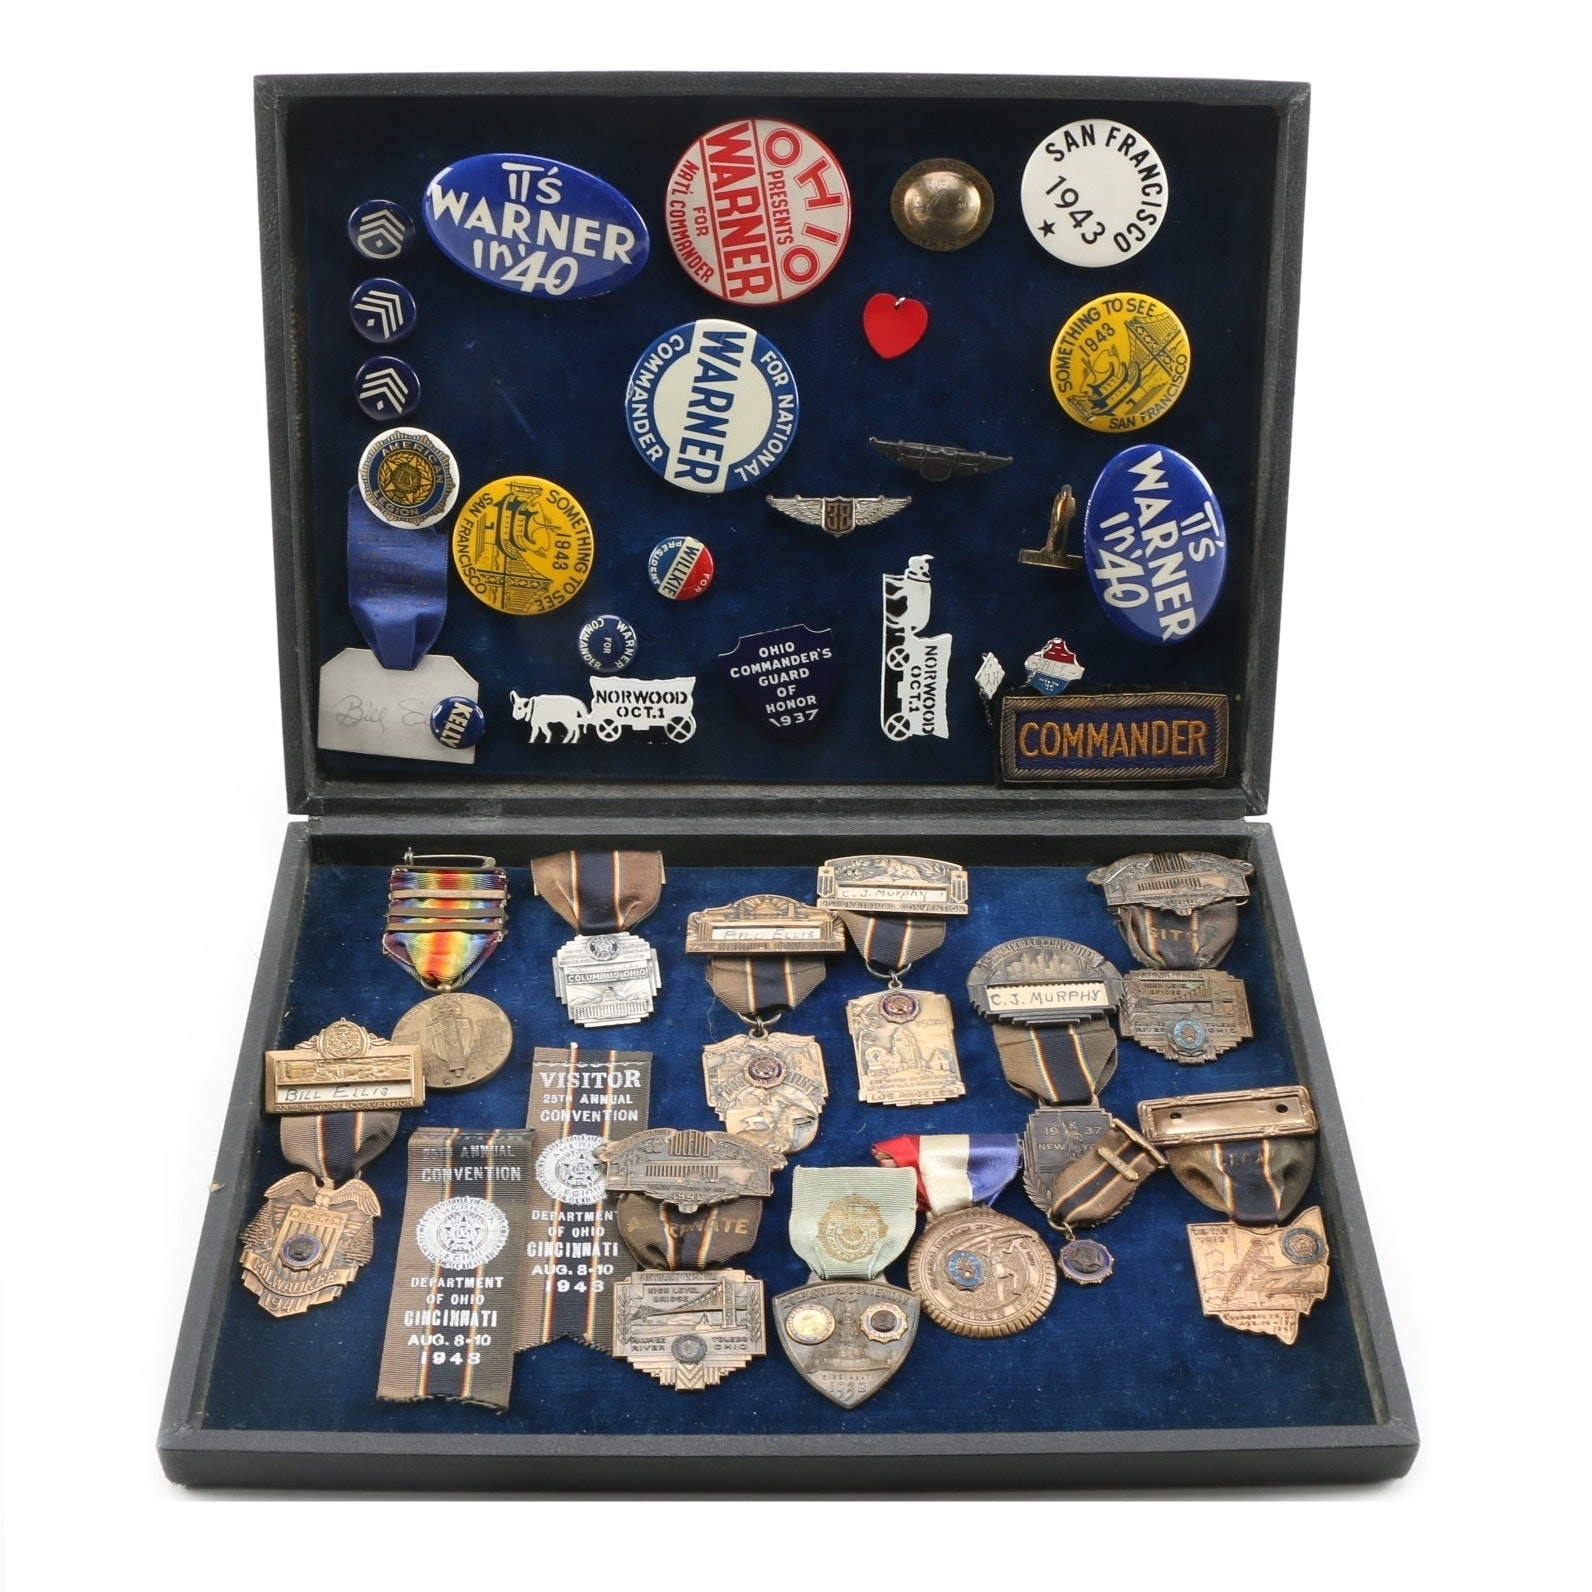 Circa 1937-41 American Legion Convention Pins with Ribbons